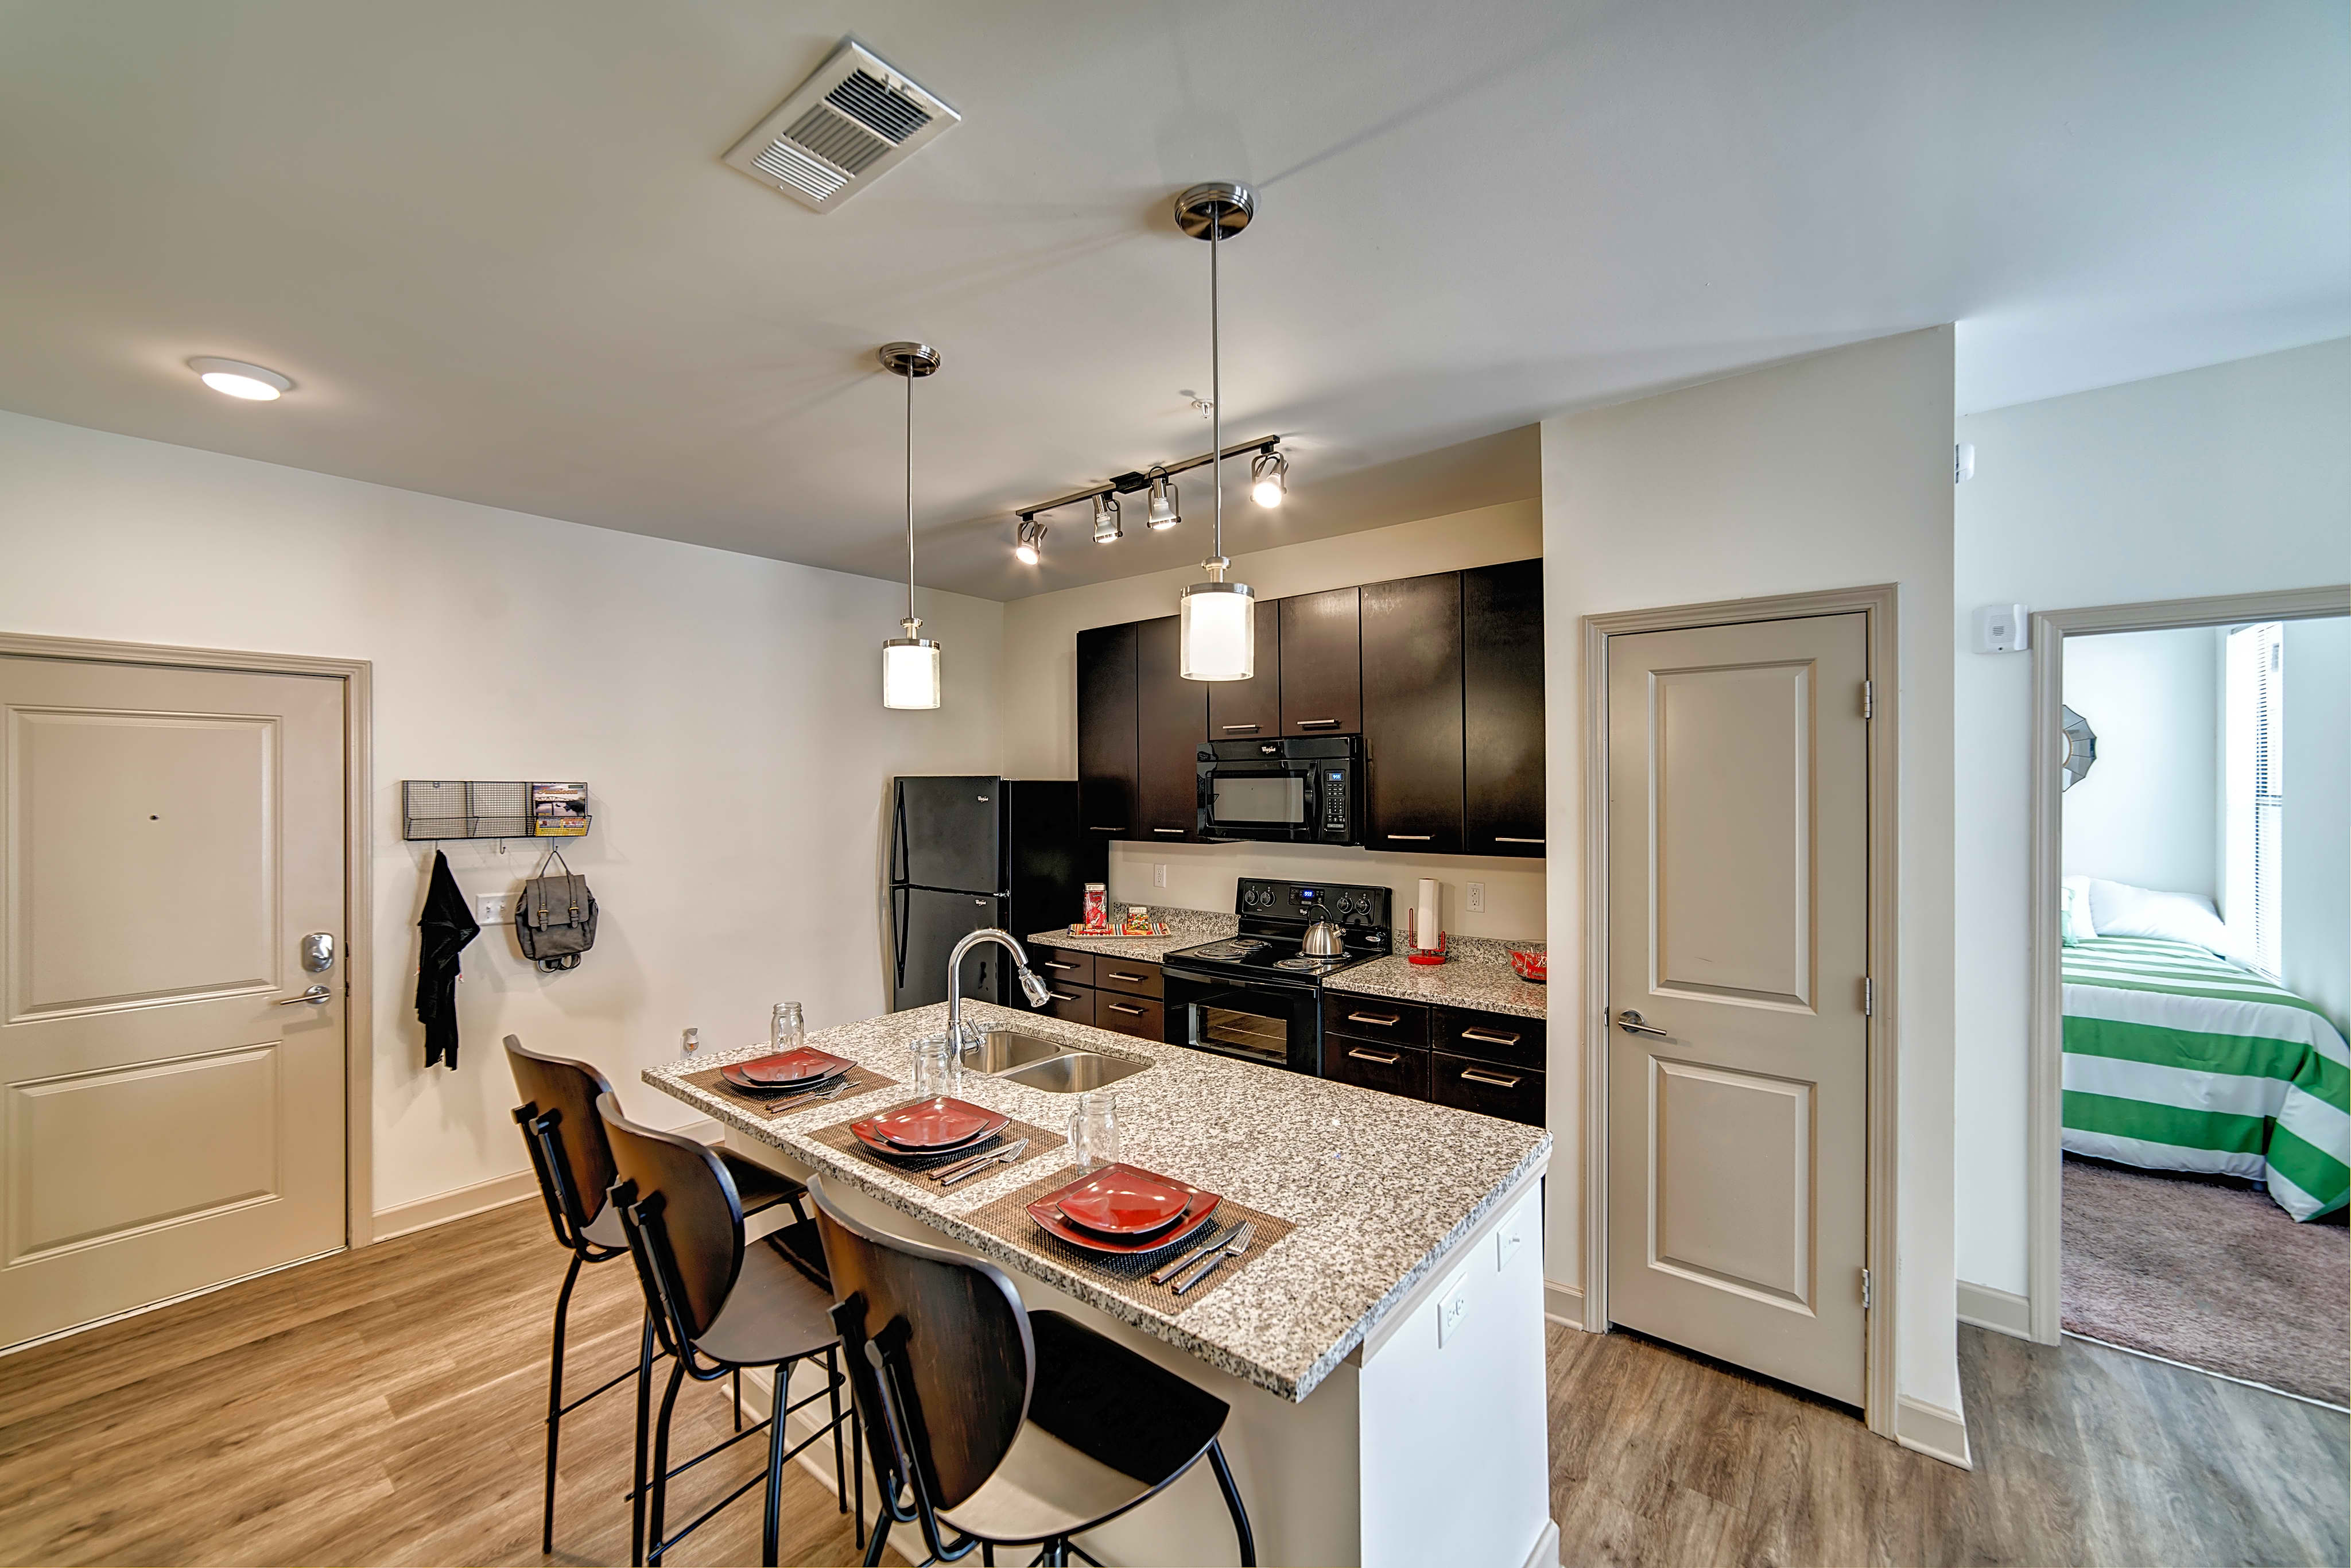 Apartments Near University of Alabama Riverfront Village - Per Bed Lease for University of Alabama Students in Tuscaloosa, AL